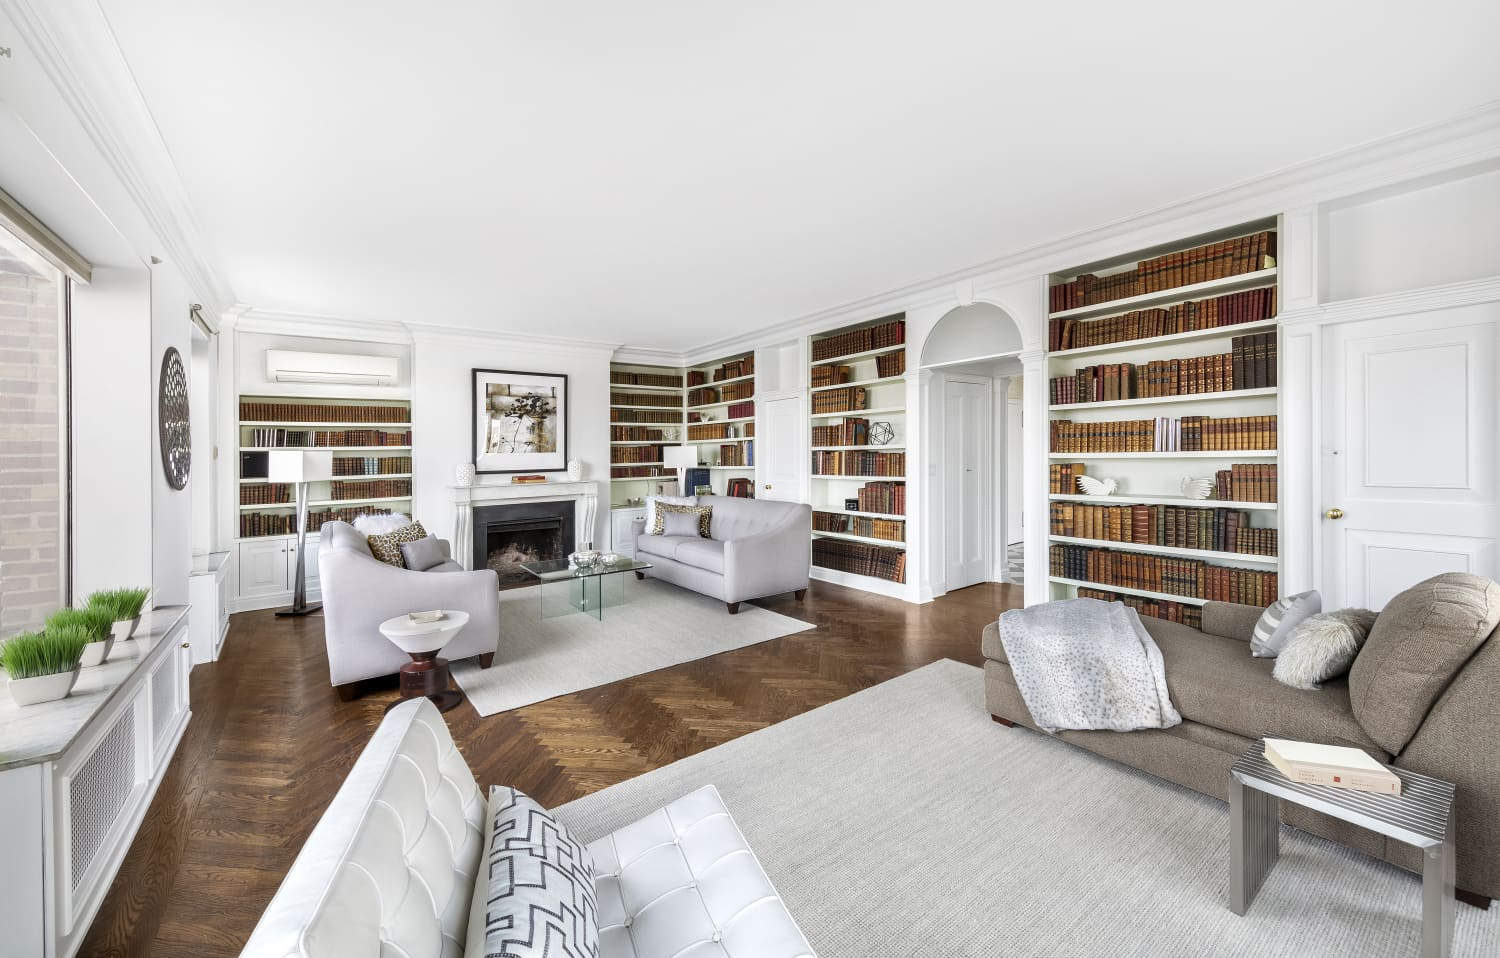 Puttin' On the Ritz: Irving Berlin's Former NYC Penthouse Is For Sale